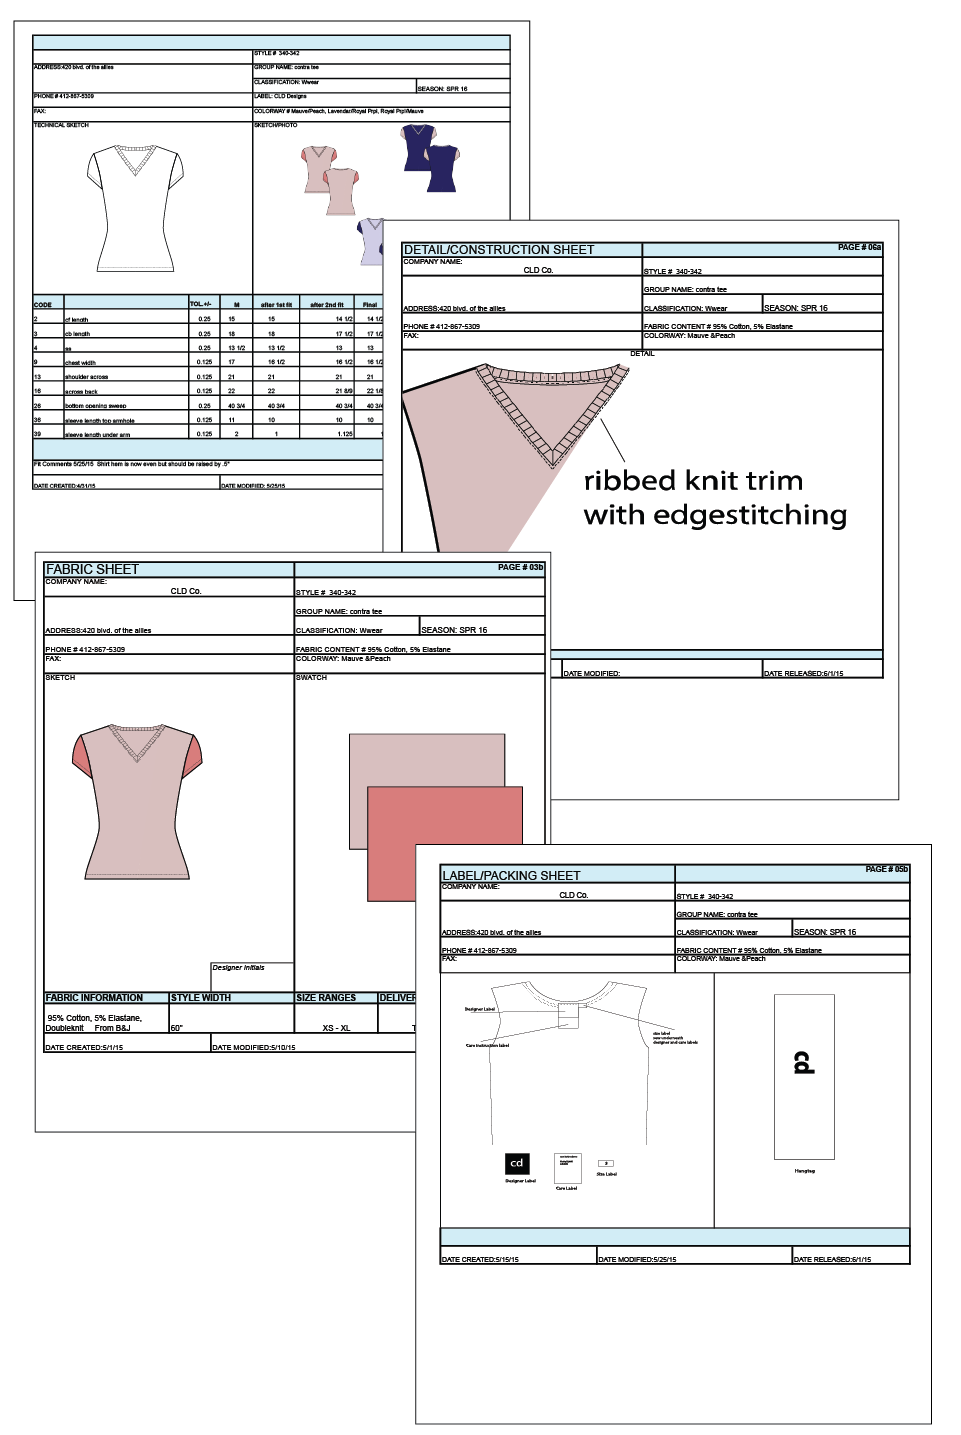 Sample pages of technical package for V-neck t-shirt, created with excel using drawings made in Illustrator.